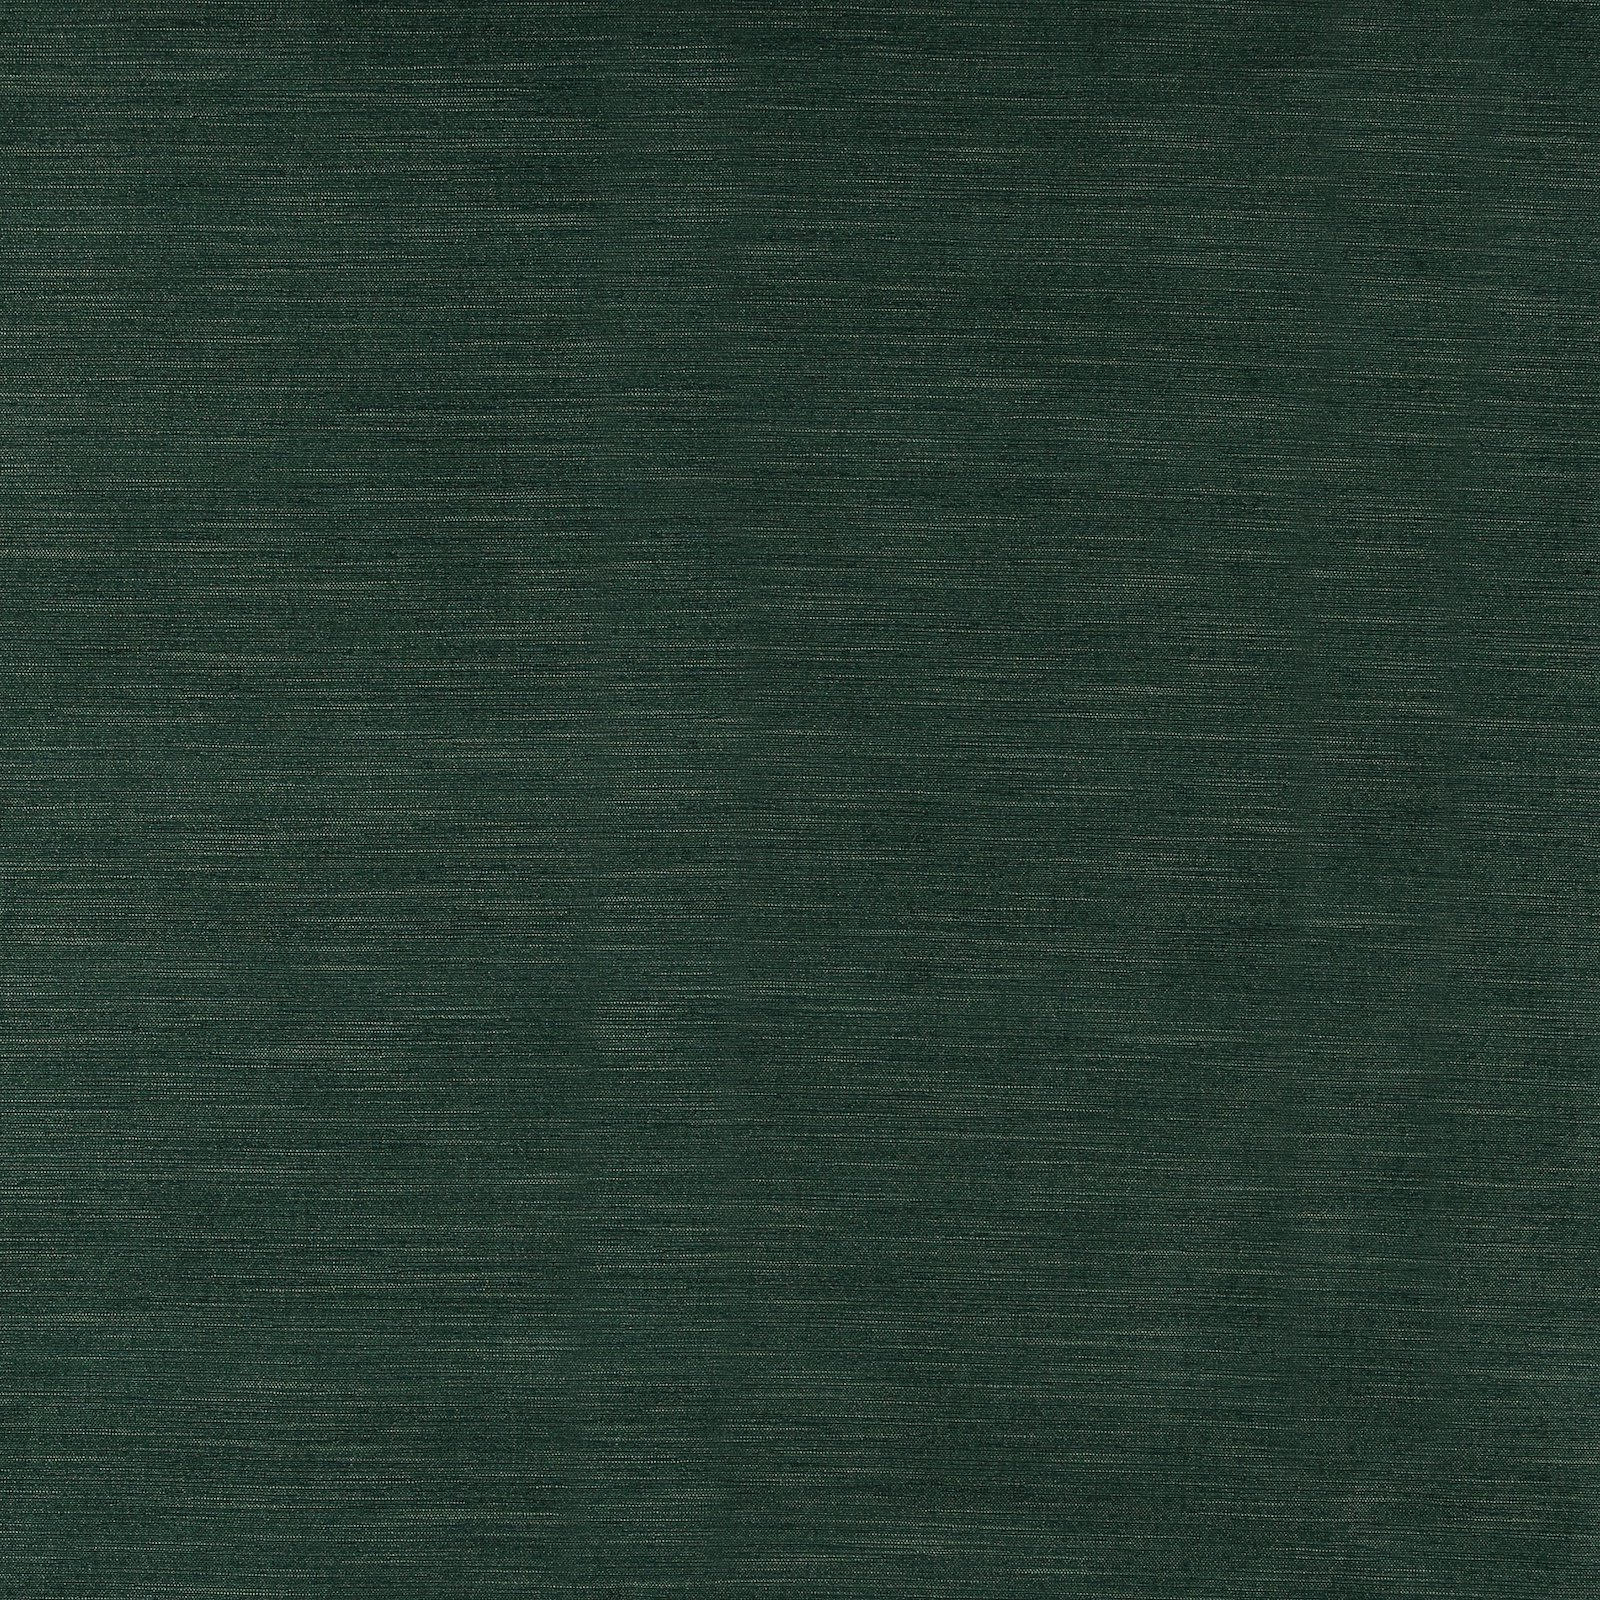 Recycled upholstery fabric green melange 823966_pack_solid